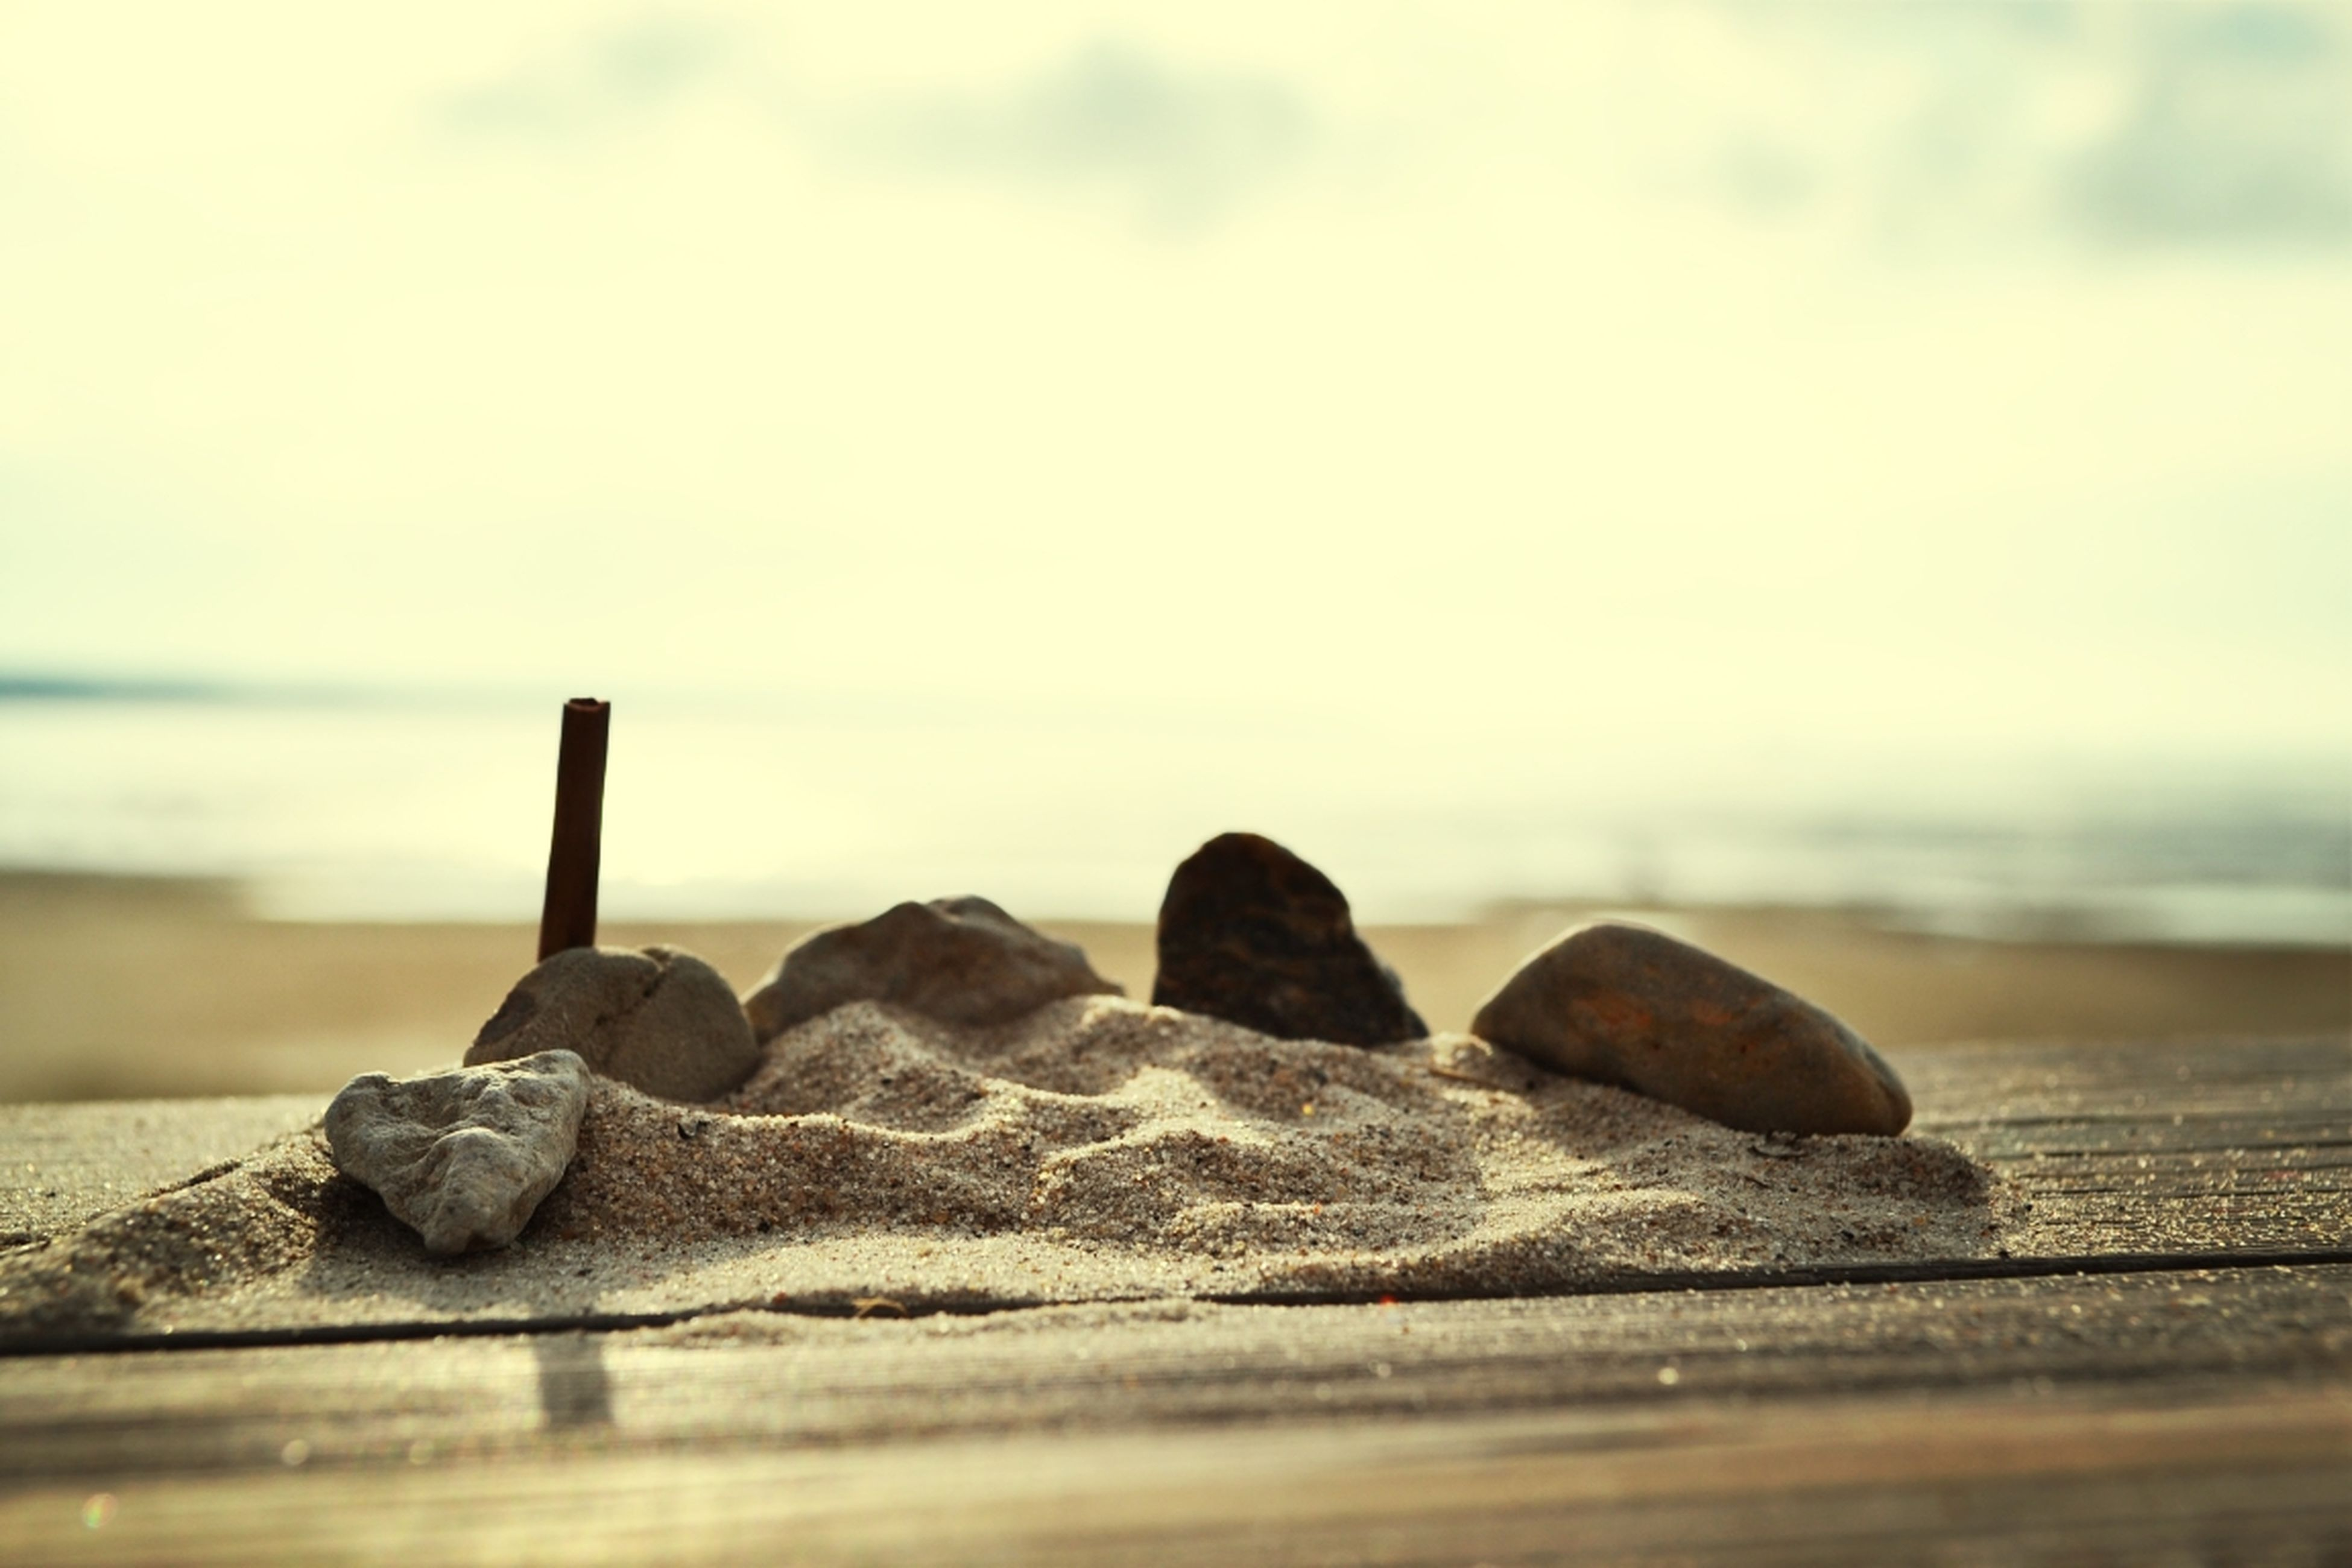 sky, sea, surface level, focus on foreground, selective focus, tranquility, beach, tranquil scene, water, nature, close-up, rock - object, pebble, wood - material, day, scenics, shore, outdoors, stone - object, beauty in nature